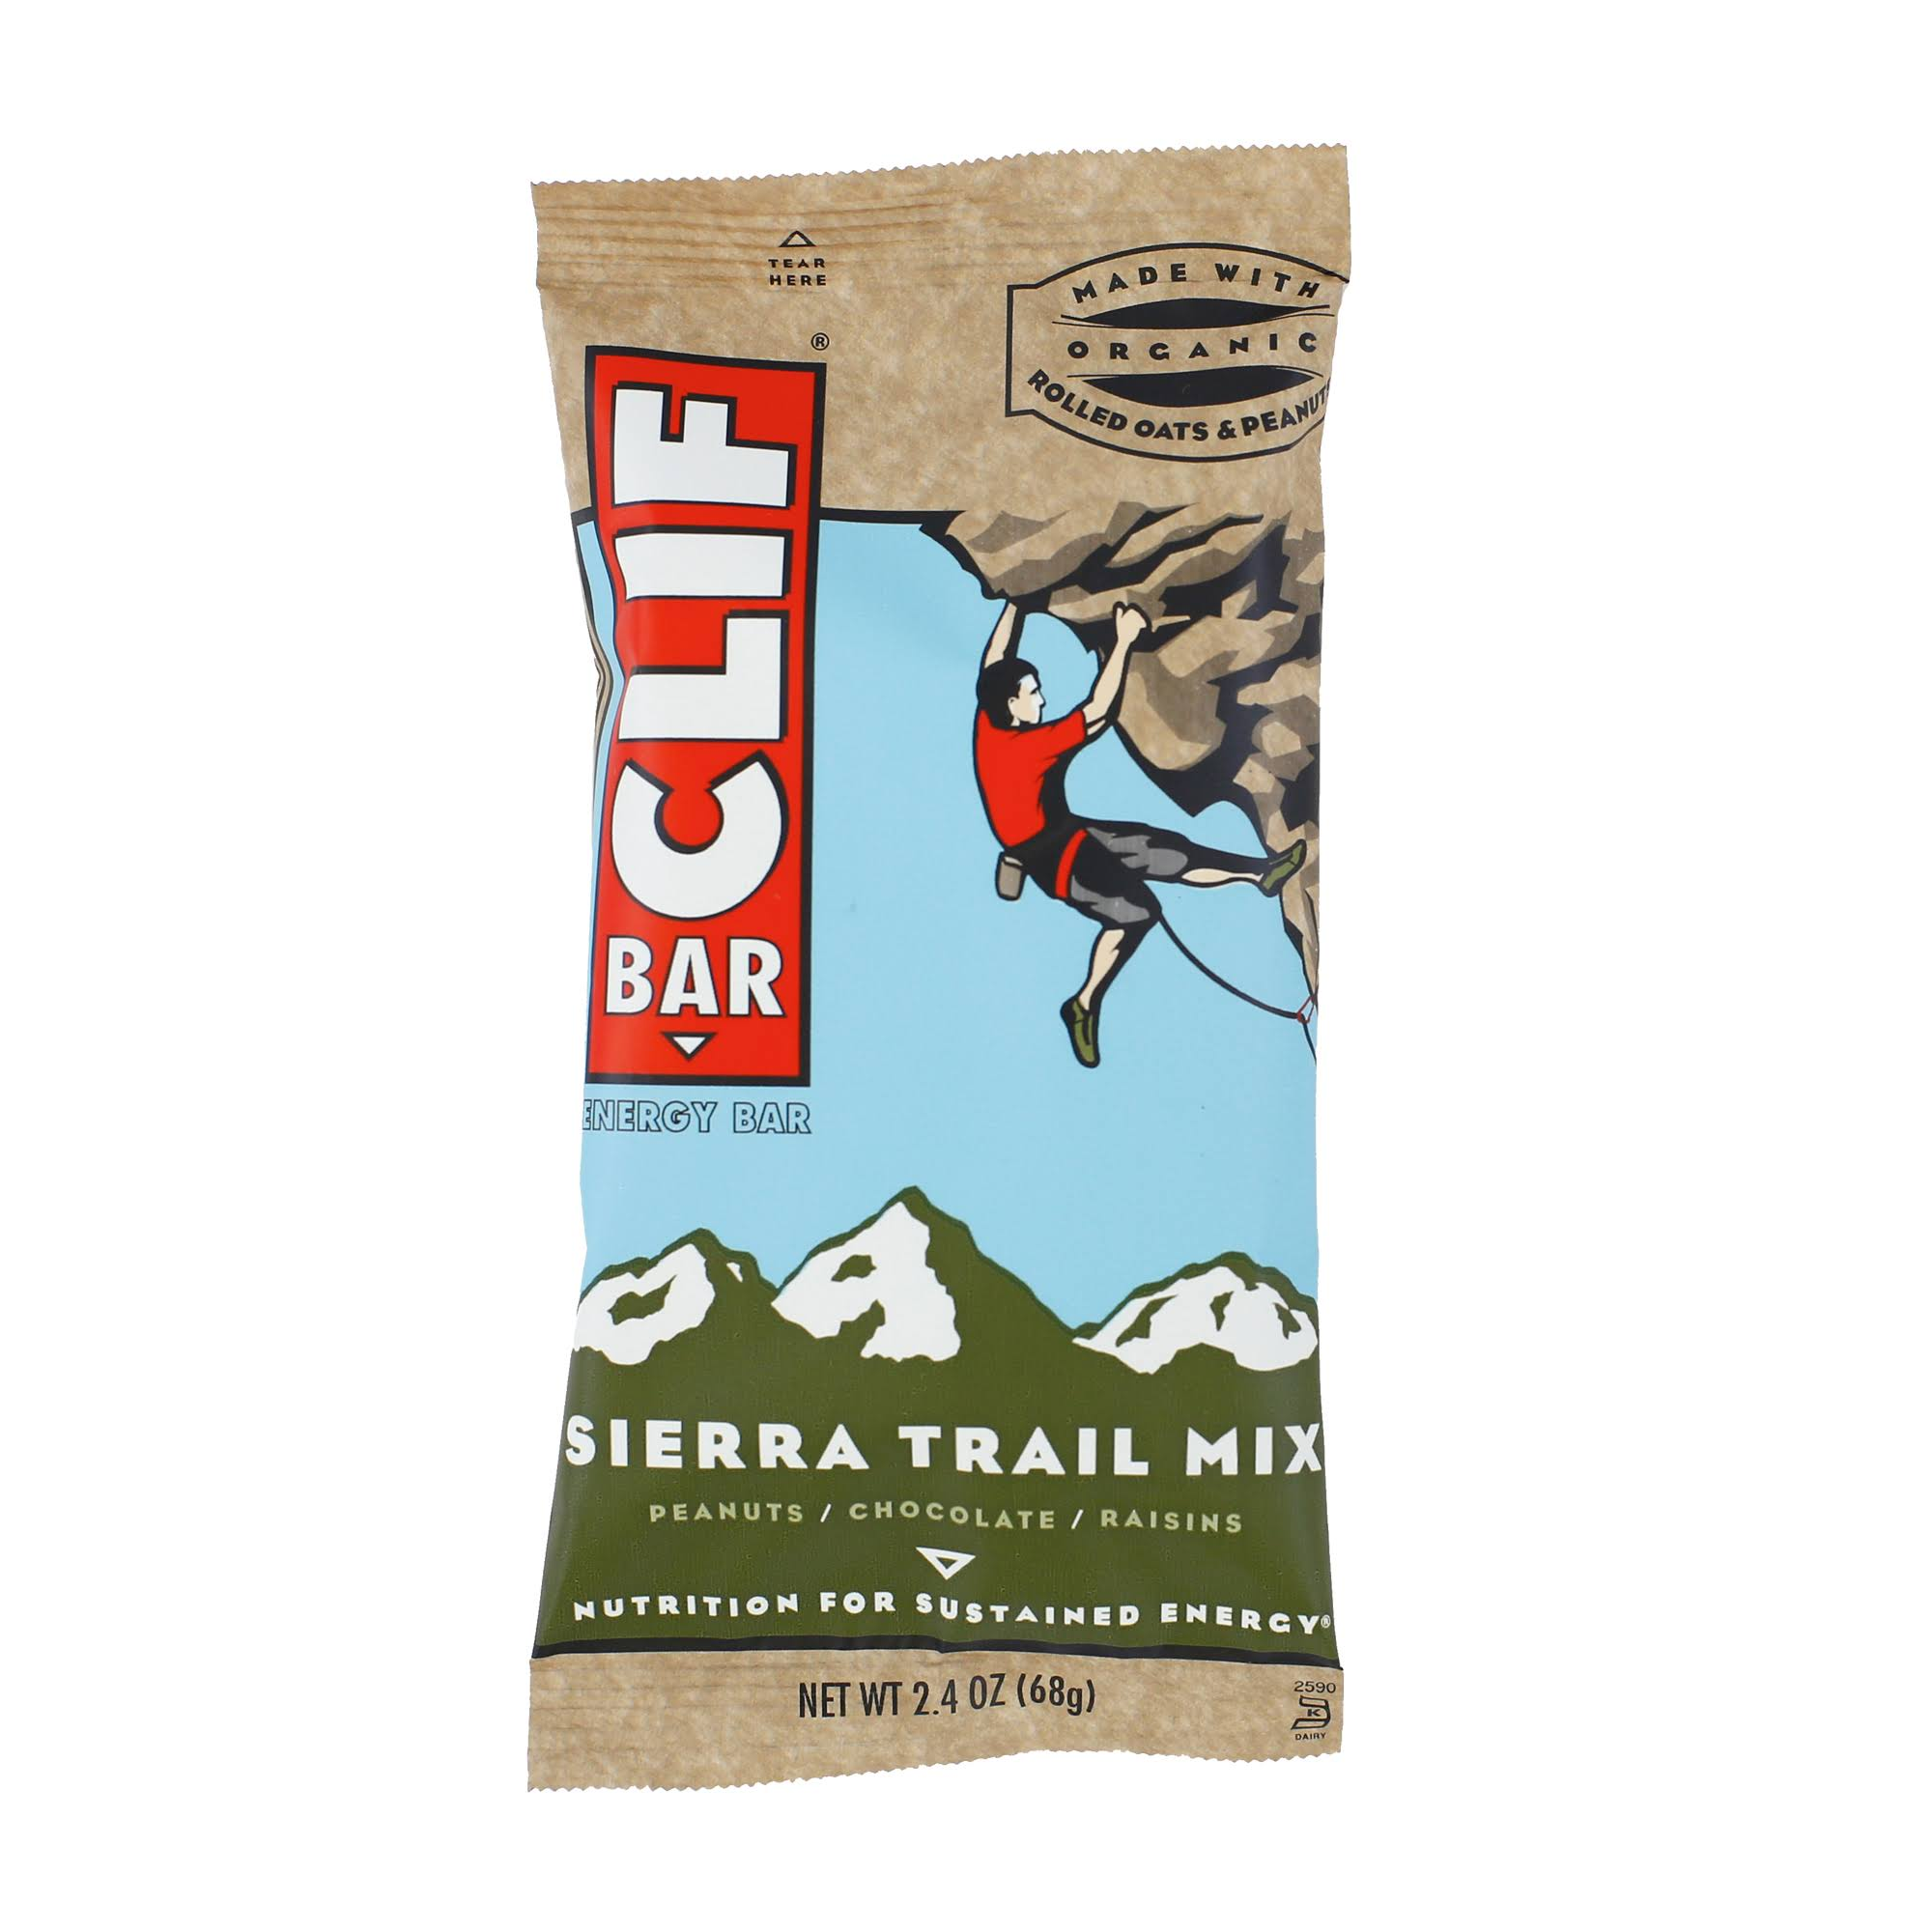 Clif Bar Energy Bar Sierra Trail Mix - Peanuts, Chocolate, Raisins